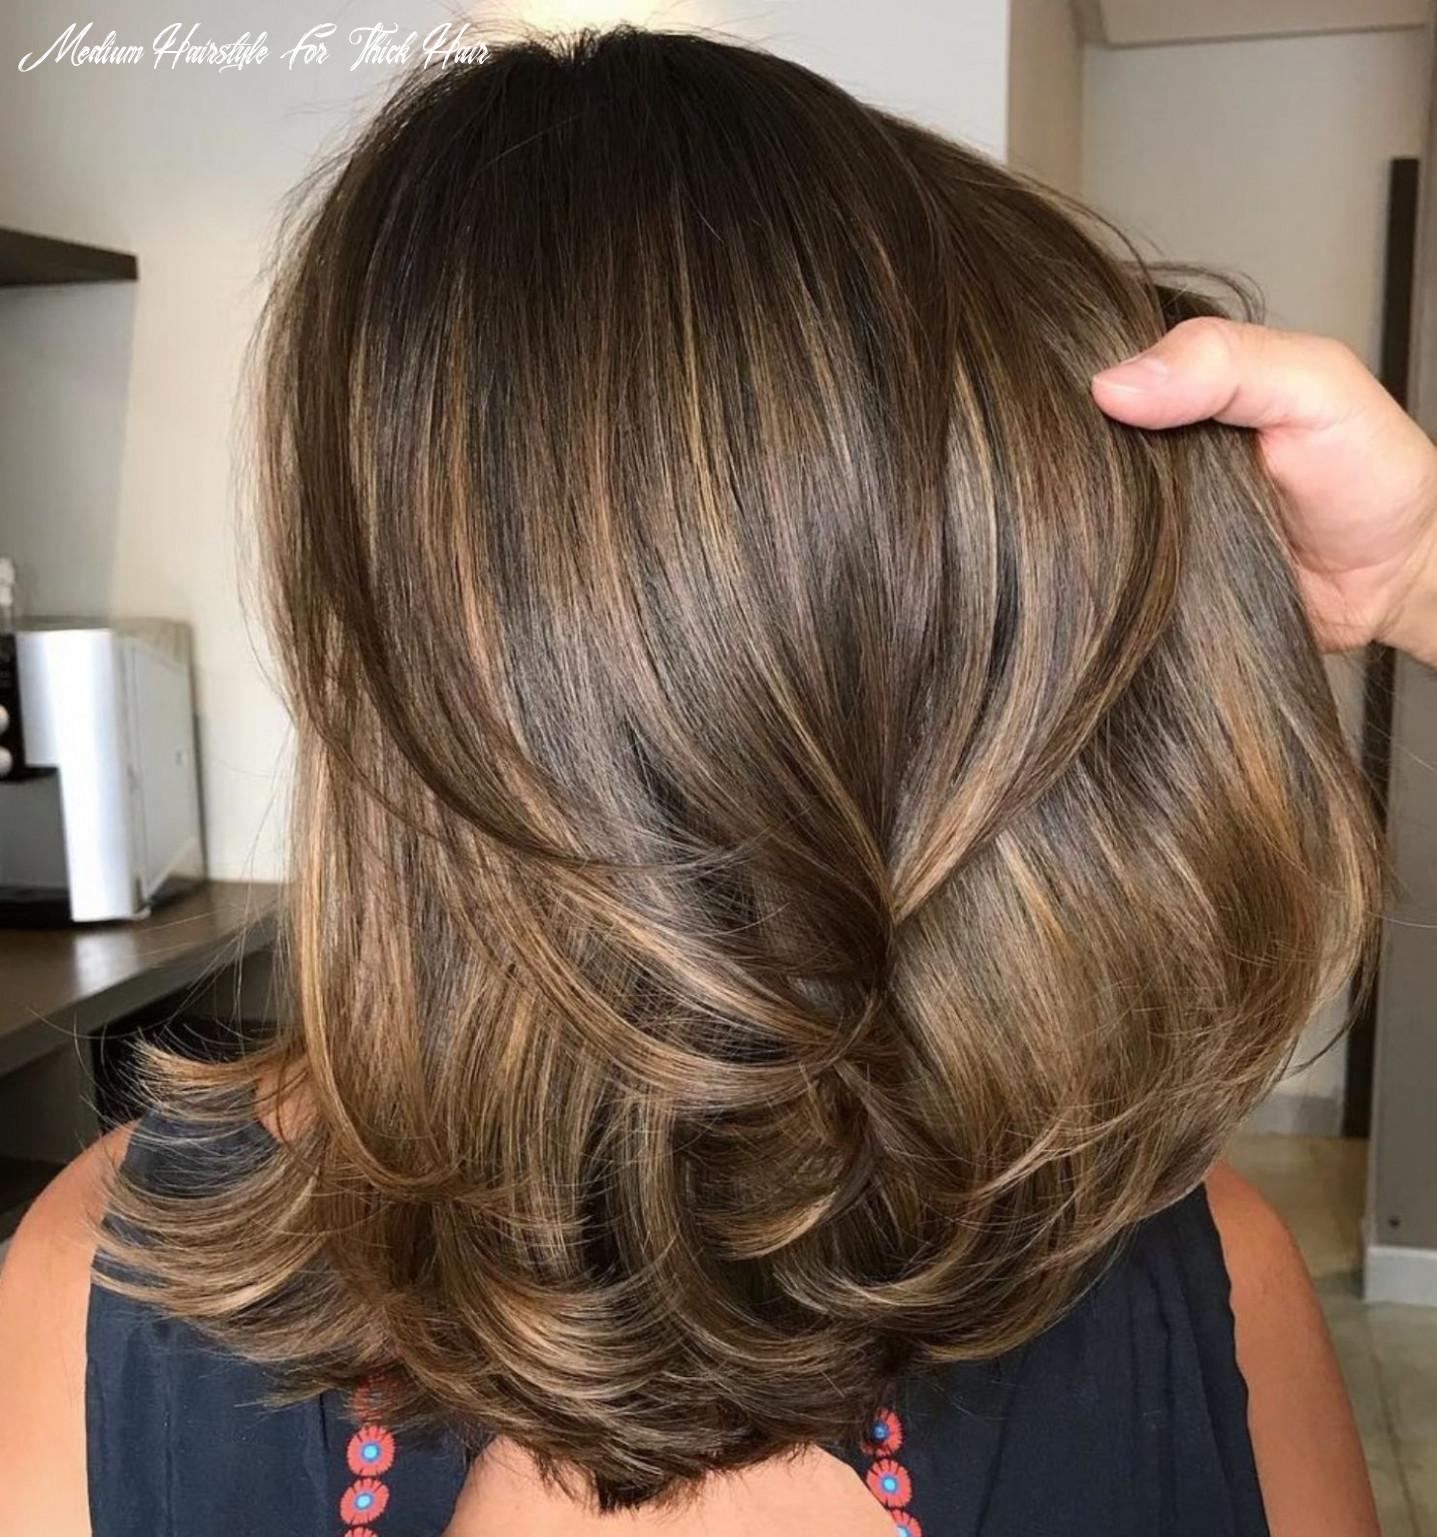 Pin on hairstyles medium hairstyle for thick hair